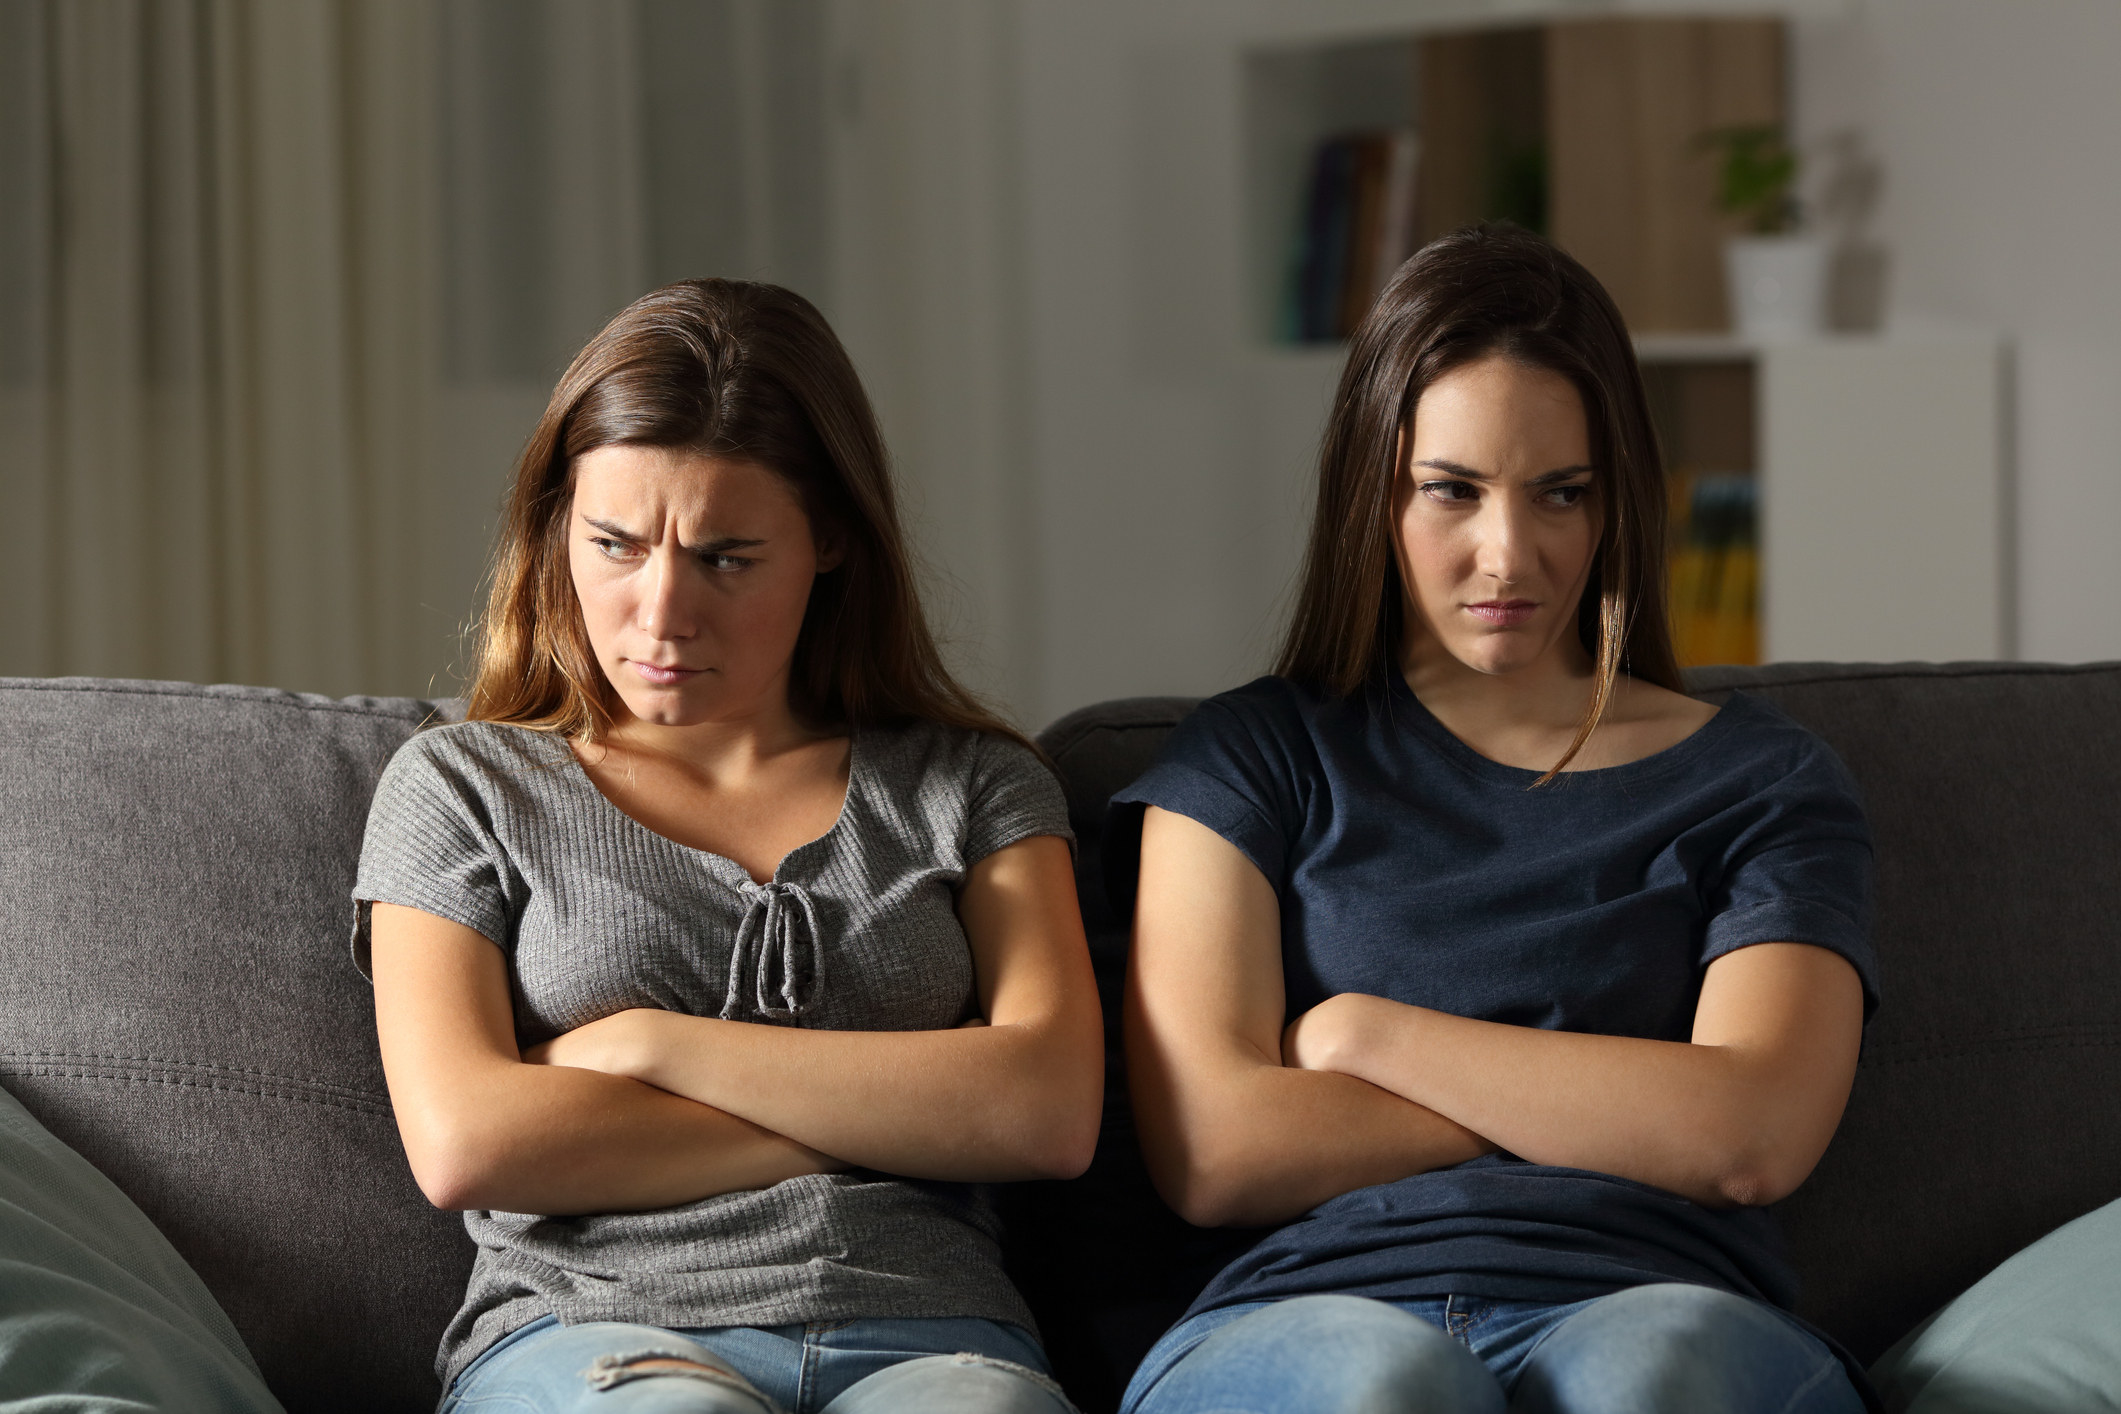 Two angry friends ignoring each other at home while sitting on the same couch